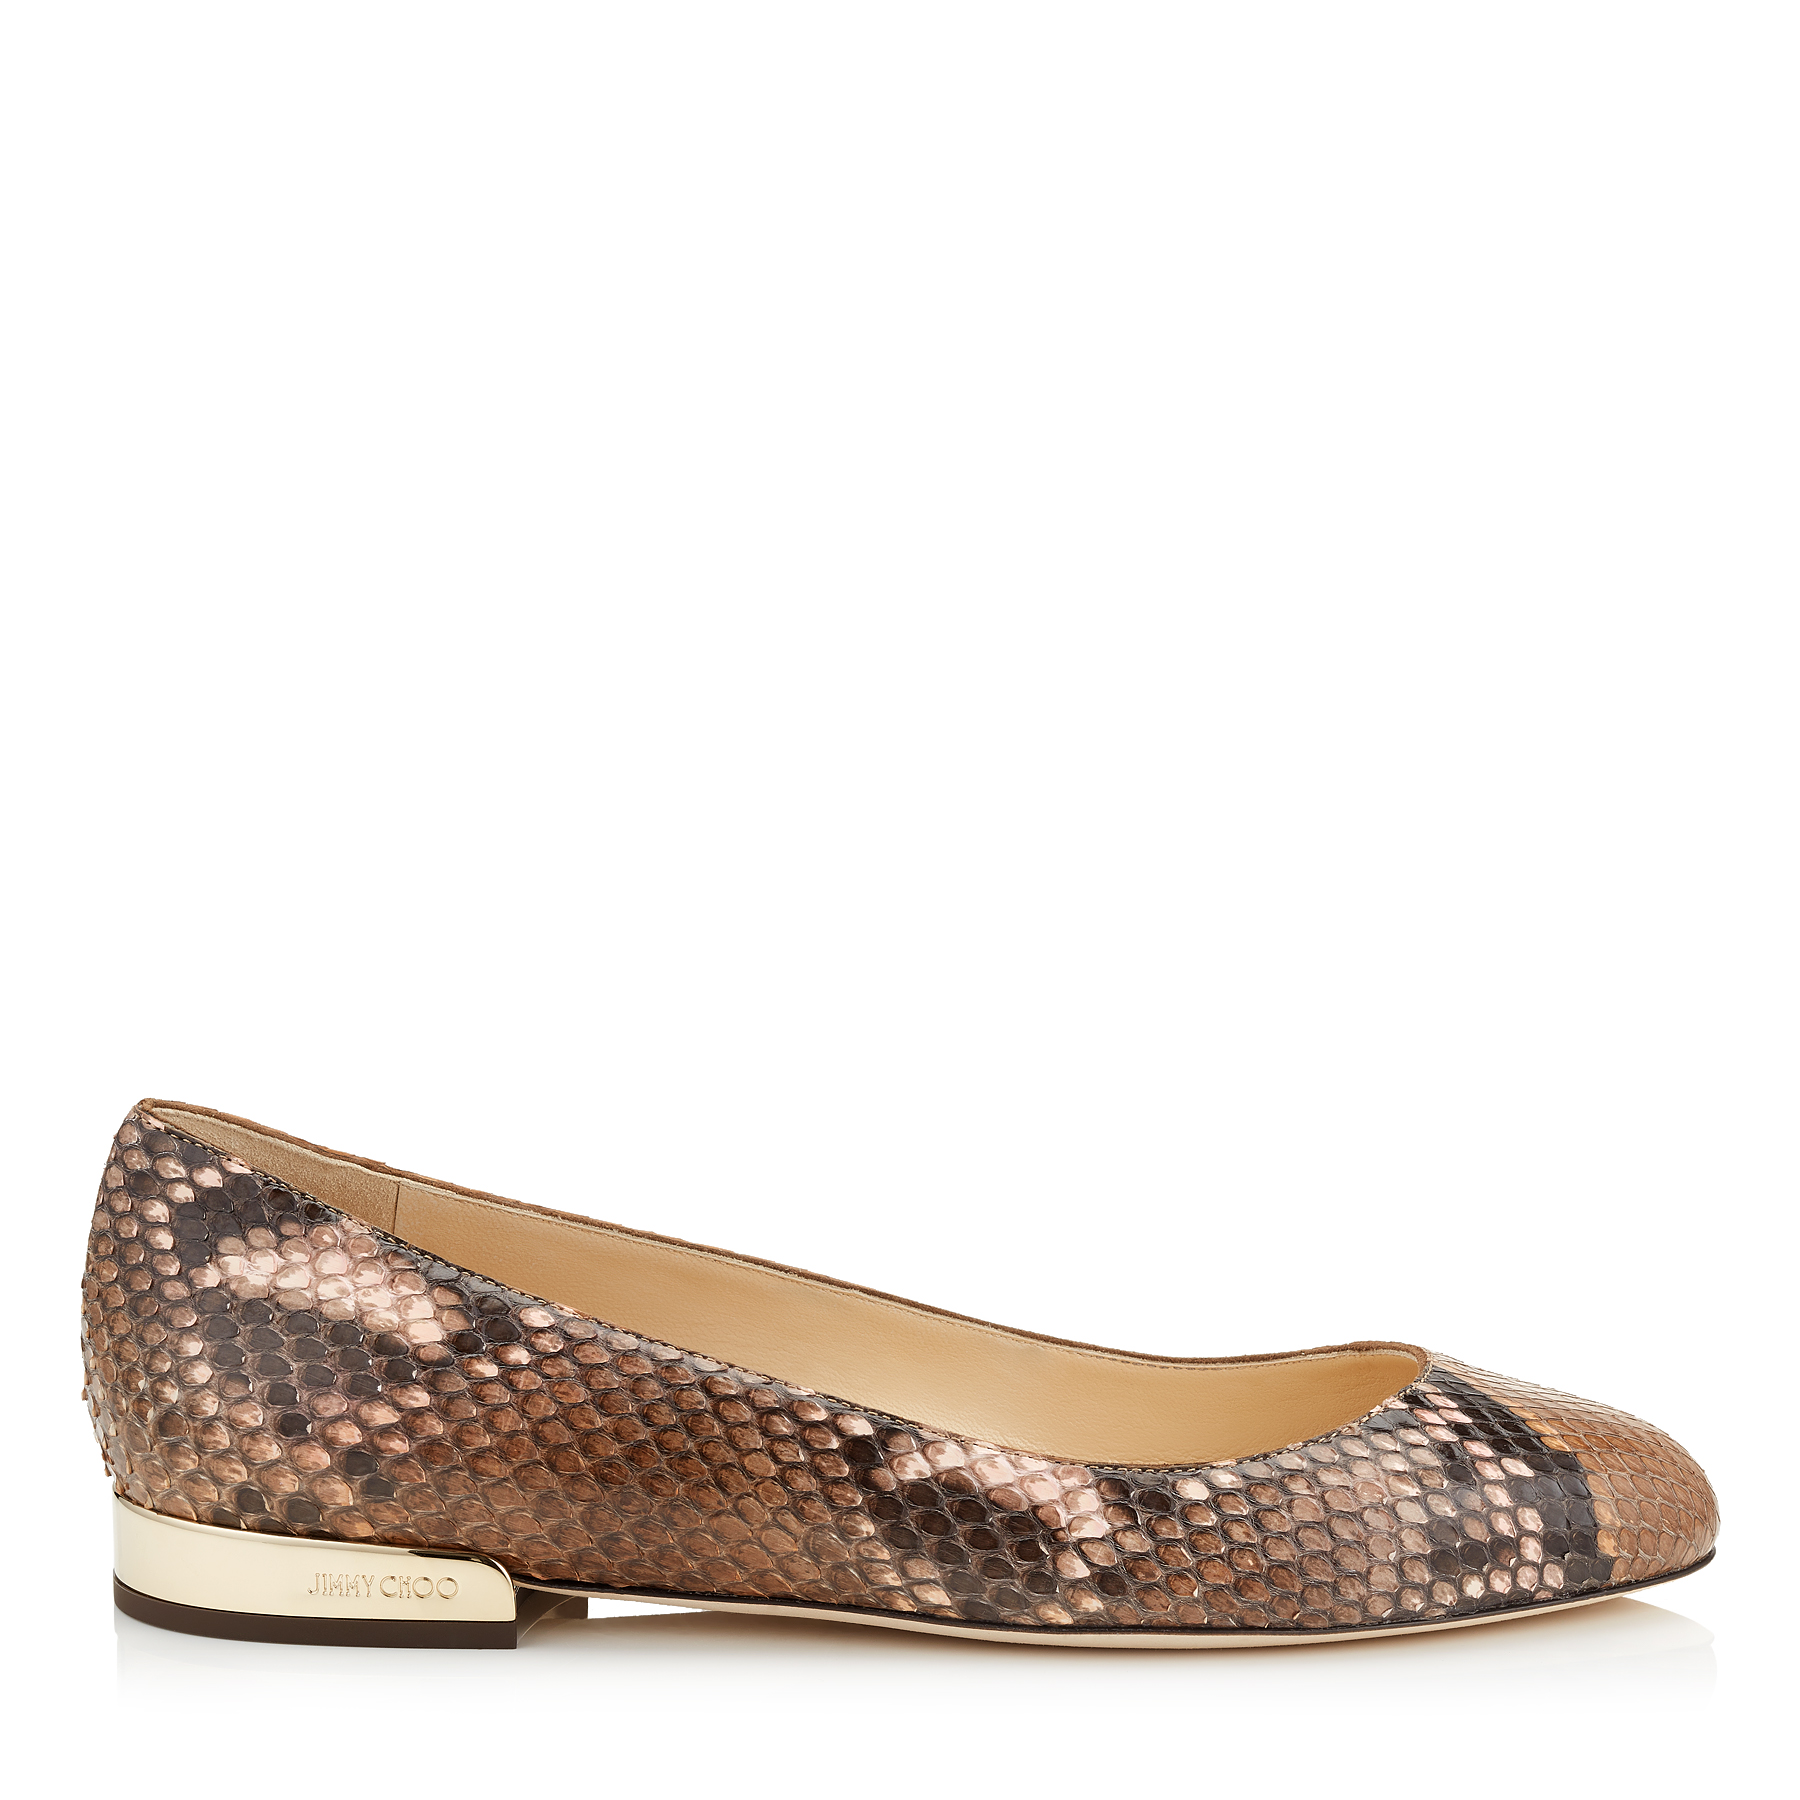 JESSIE FLAT Nutmeg and Rosewater Dégradé Painted Python Round Toe Pumps by Jimmy Choo